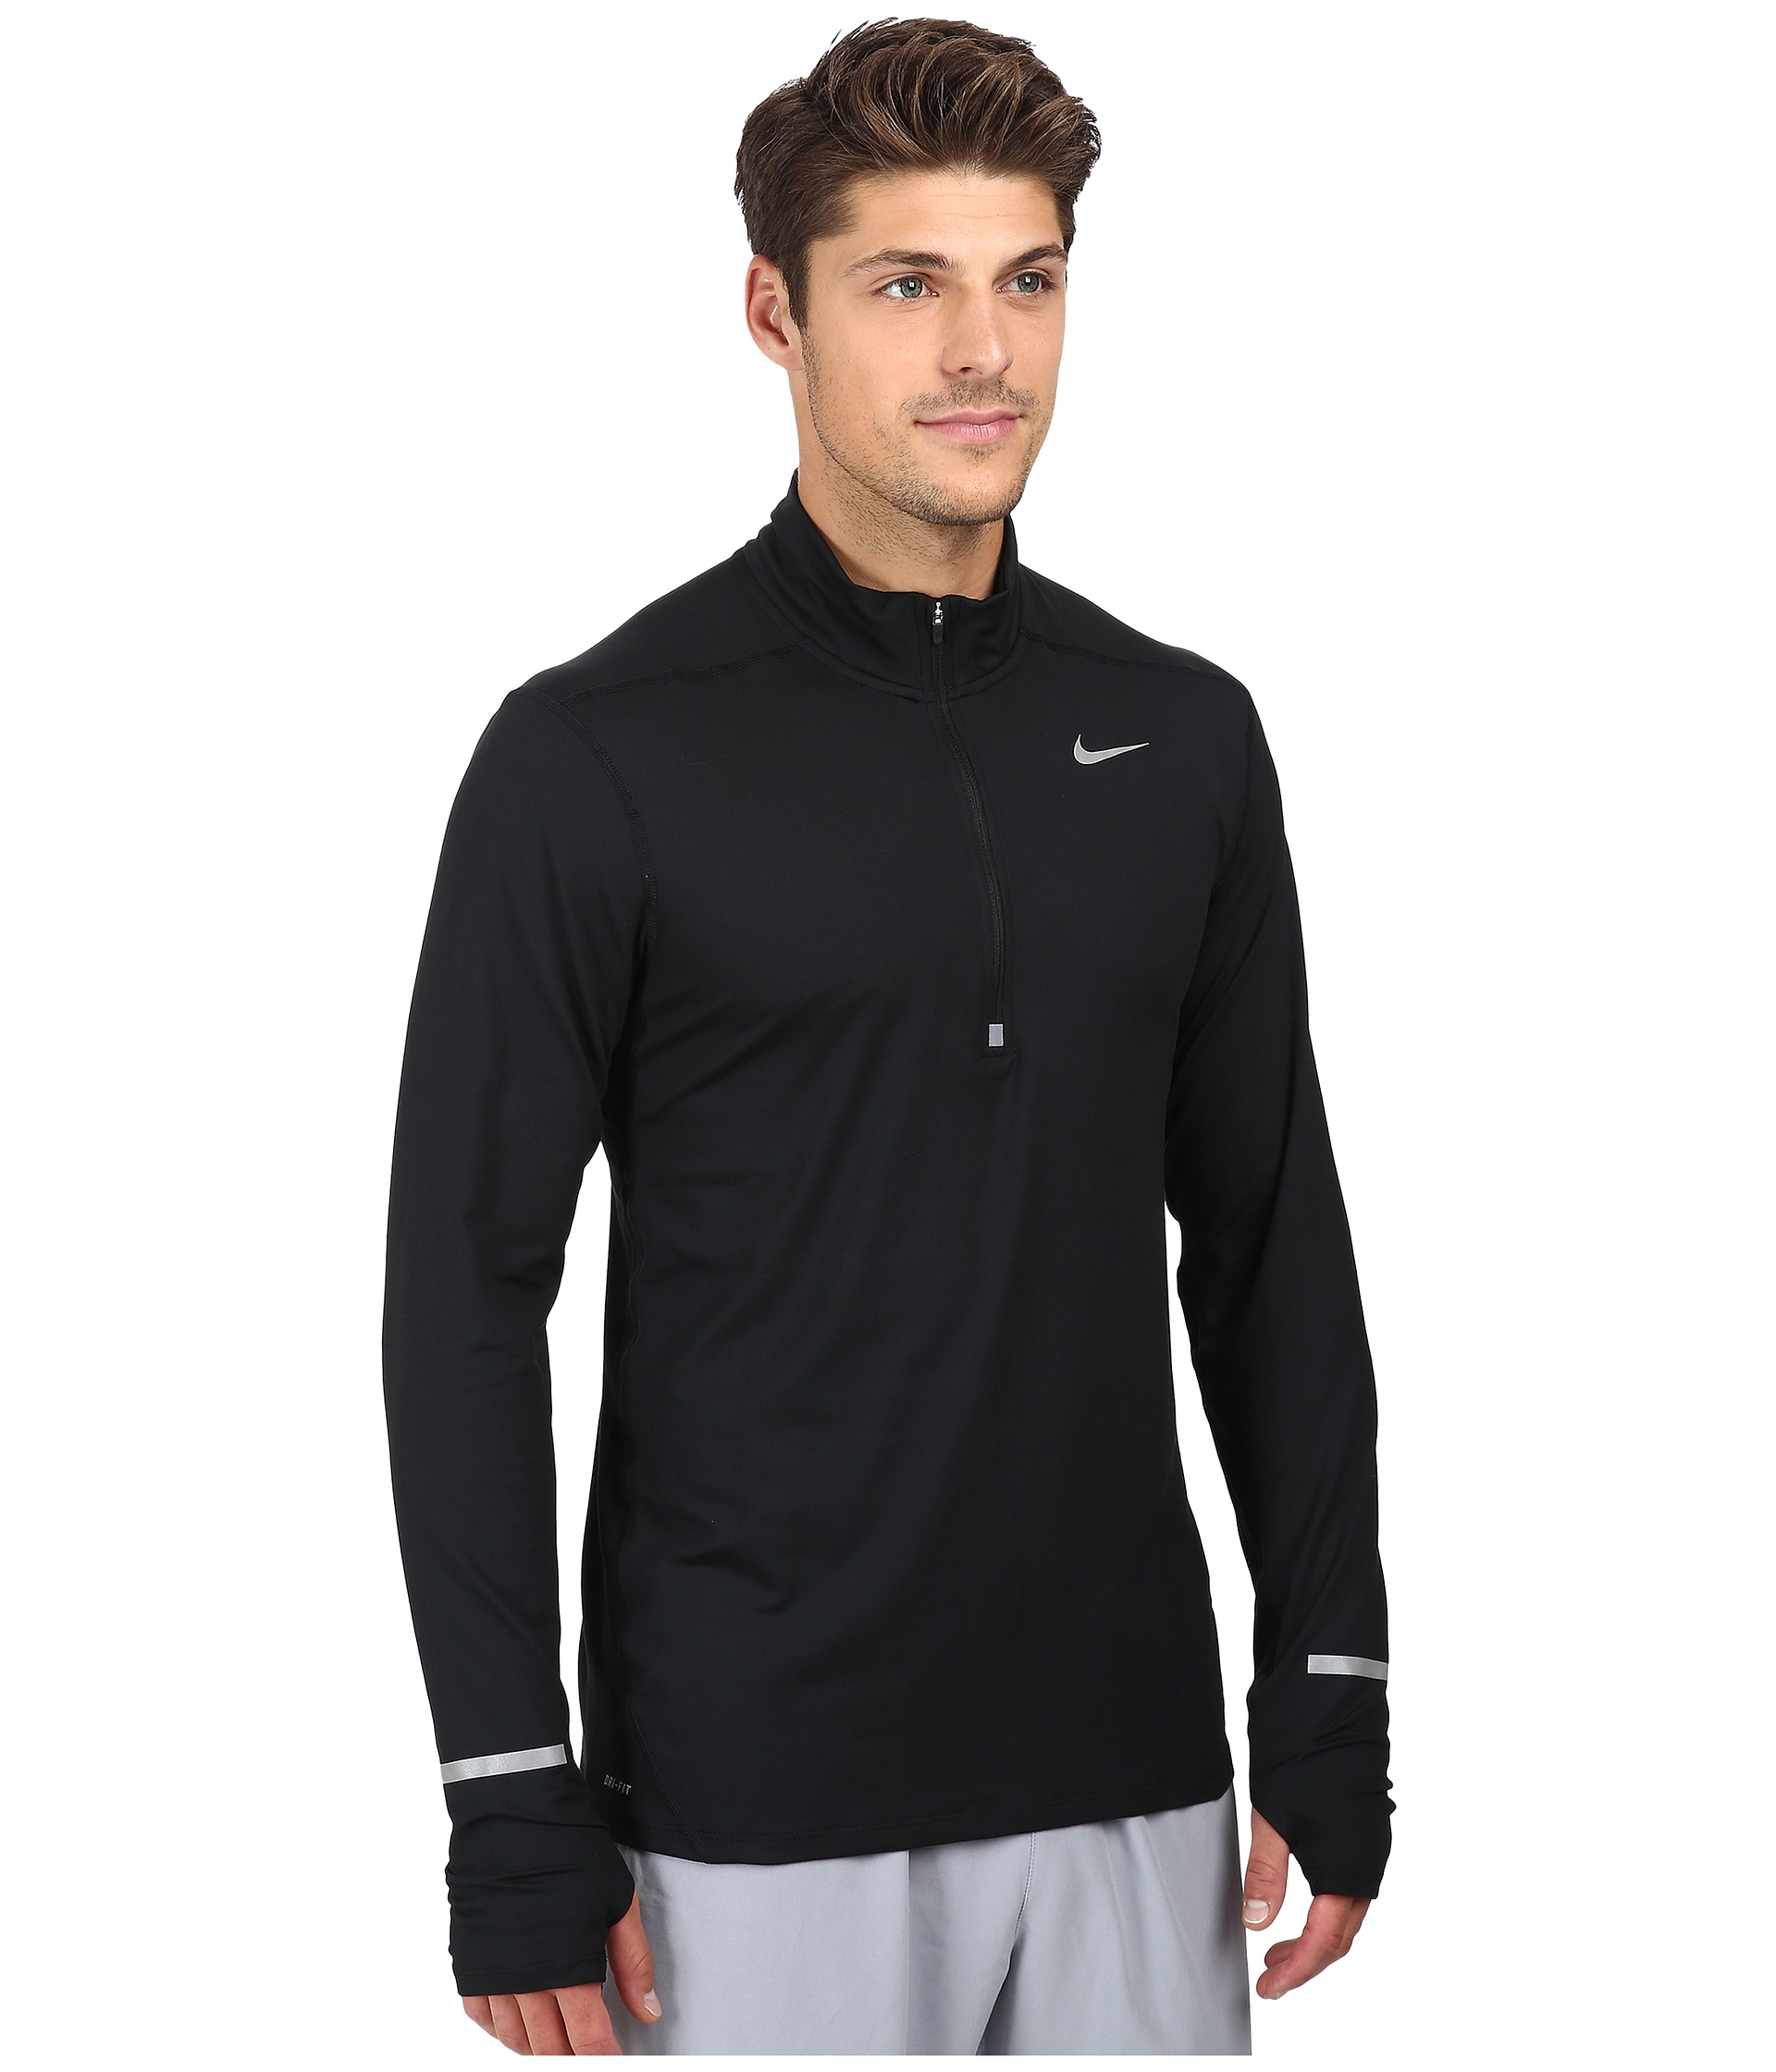 nike dry element long sleeve running top free shipping both ways. Black Bedroom Furniture Sets. Home Design Ideas